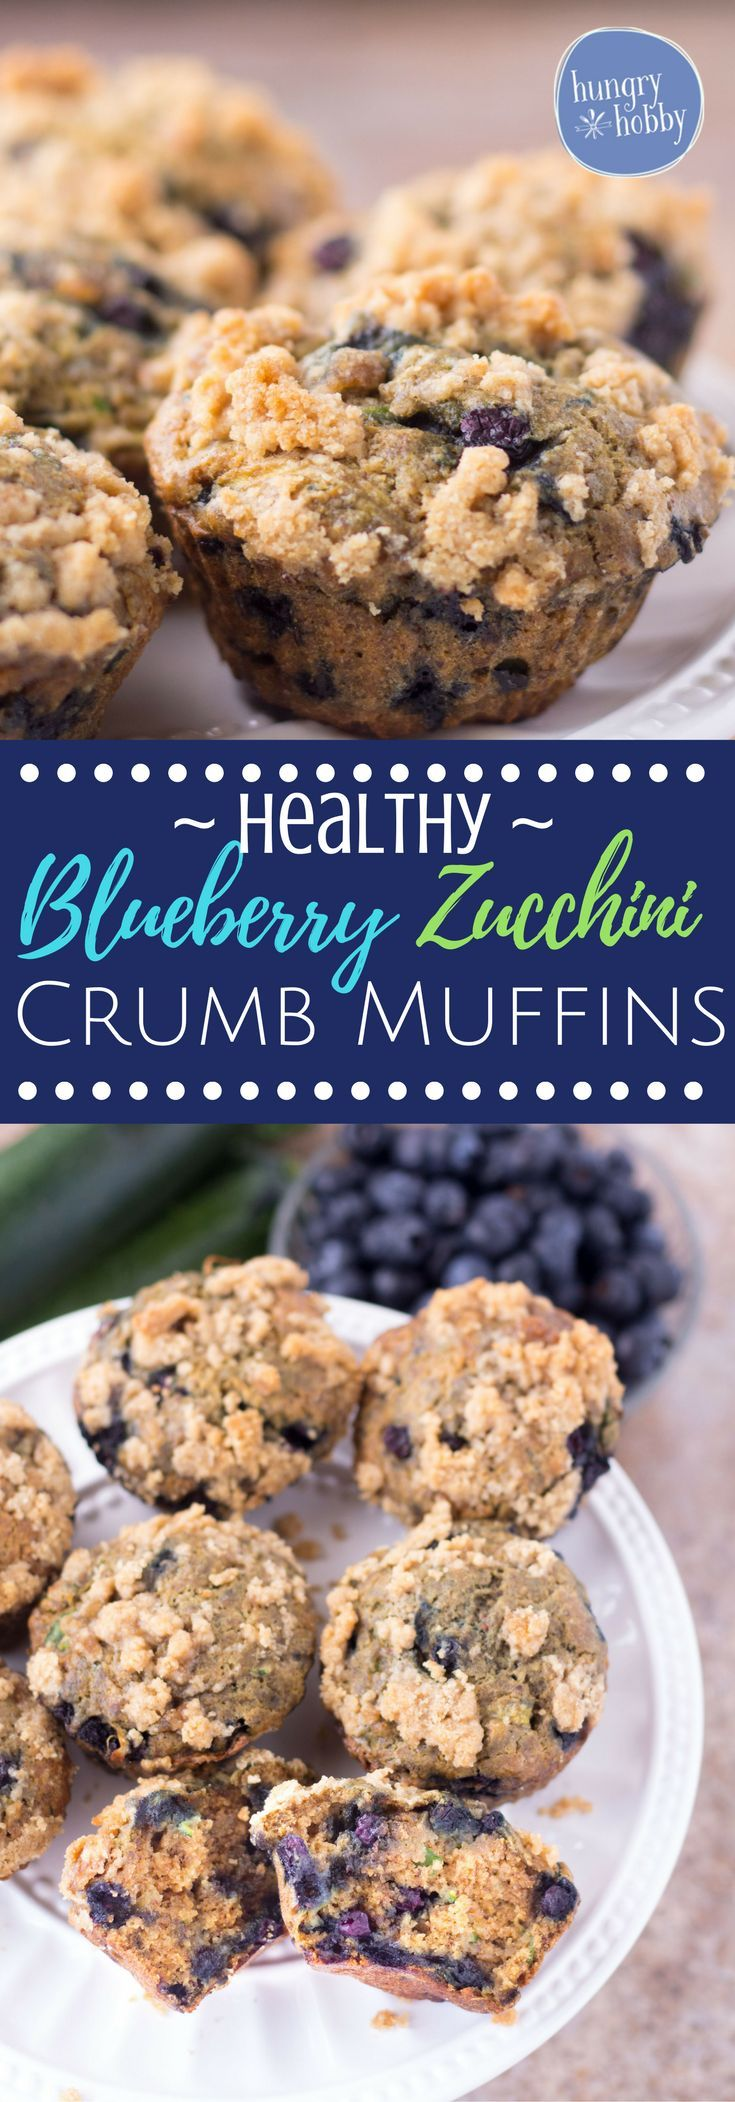 These healthy blueberry zucchini muffins are bursting with warm freshly baked blueberries and a sweet crumb topping, you'd never guess they contain a vegetable! via @hungryhobby